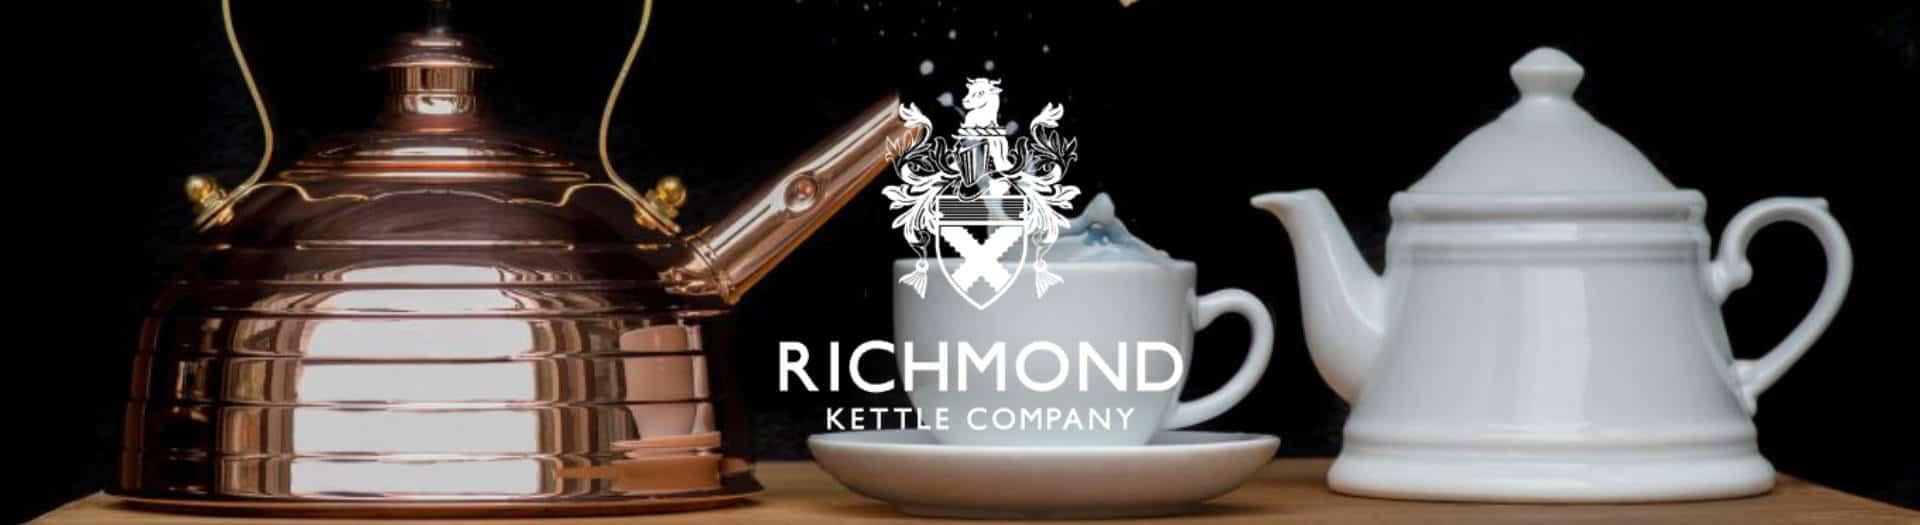 British Made Richmond Kettle And Tea Cups